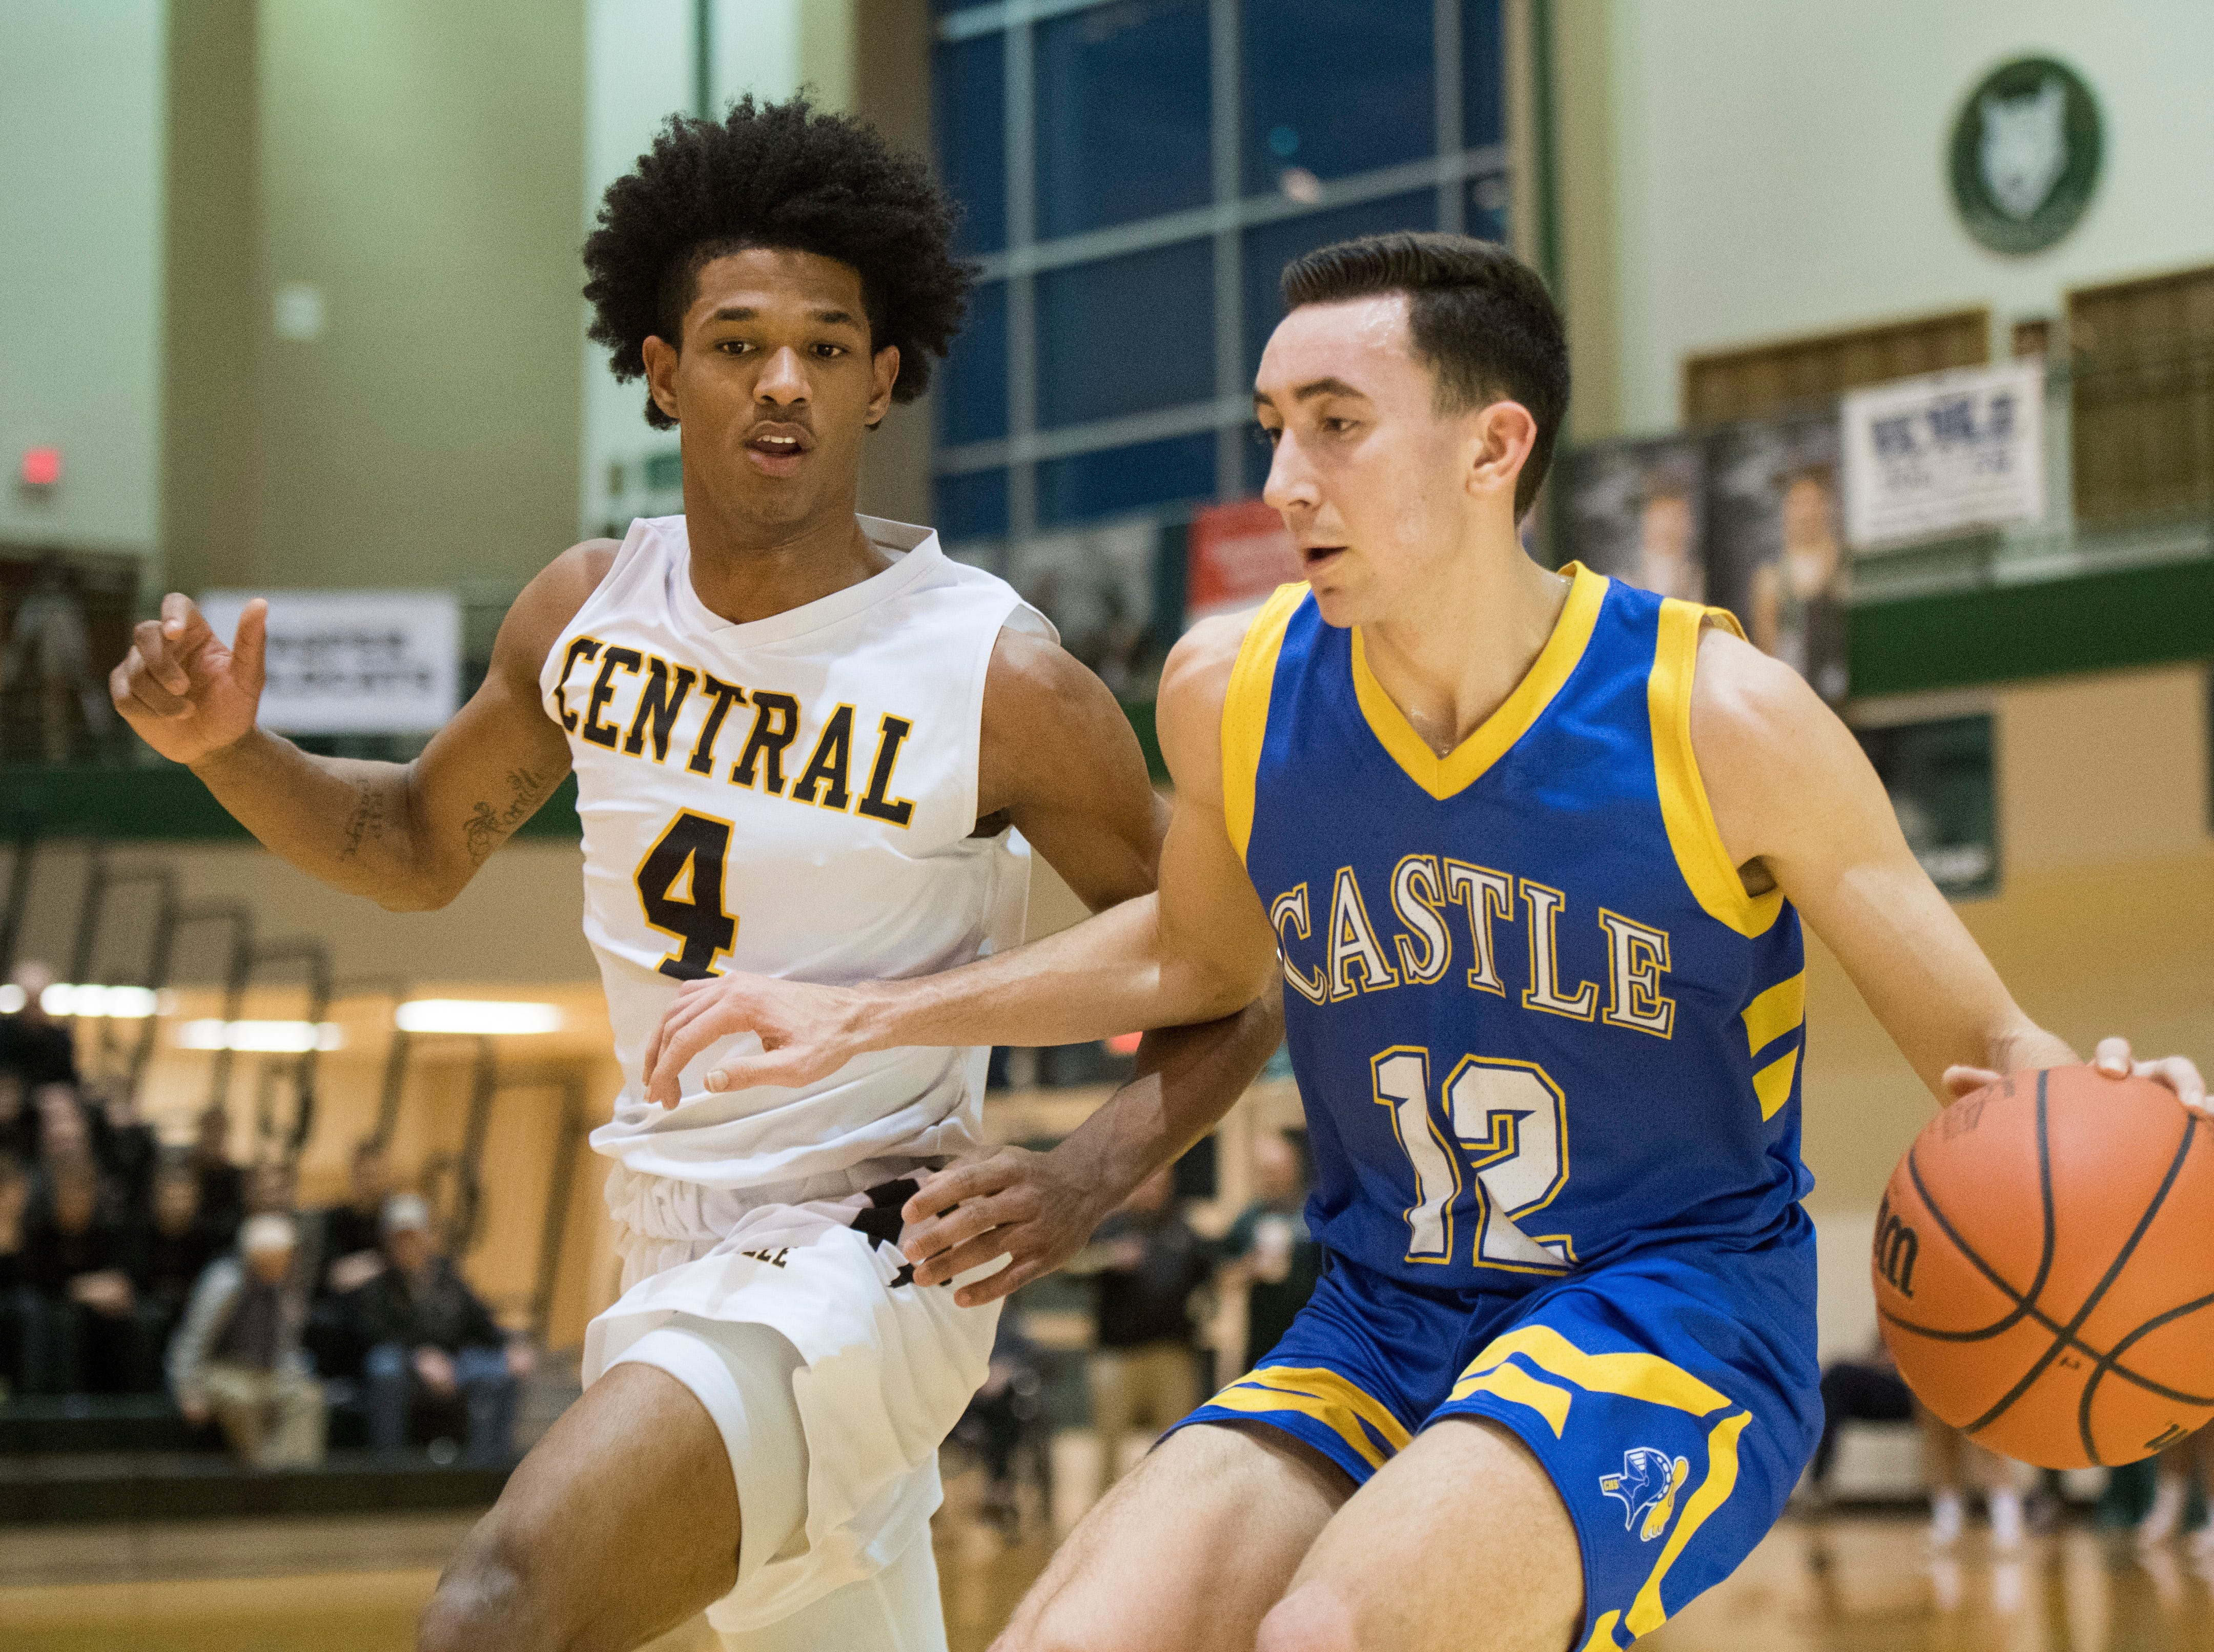 Castle's Alex Hemenway named to play in Hoosier Basketball North-South All-Star Classic